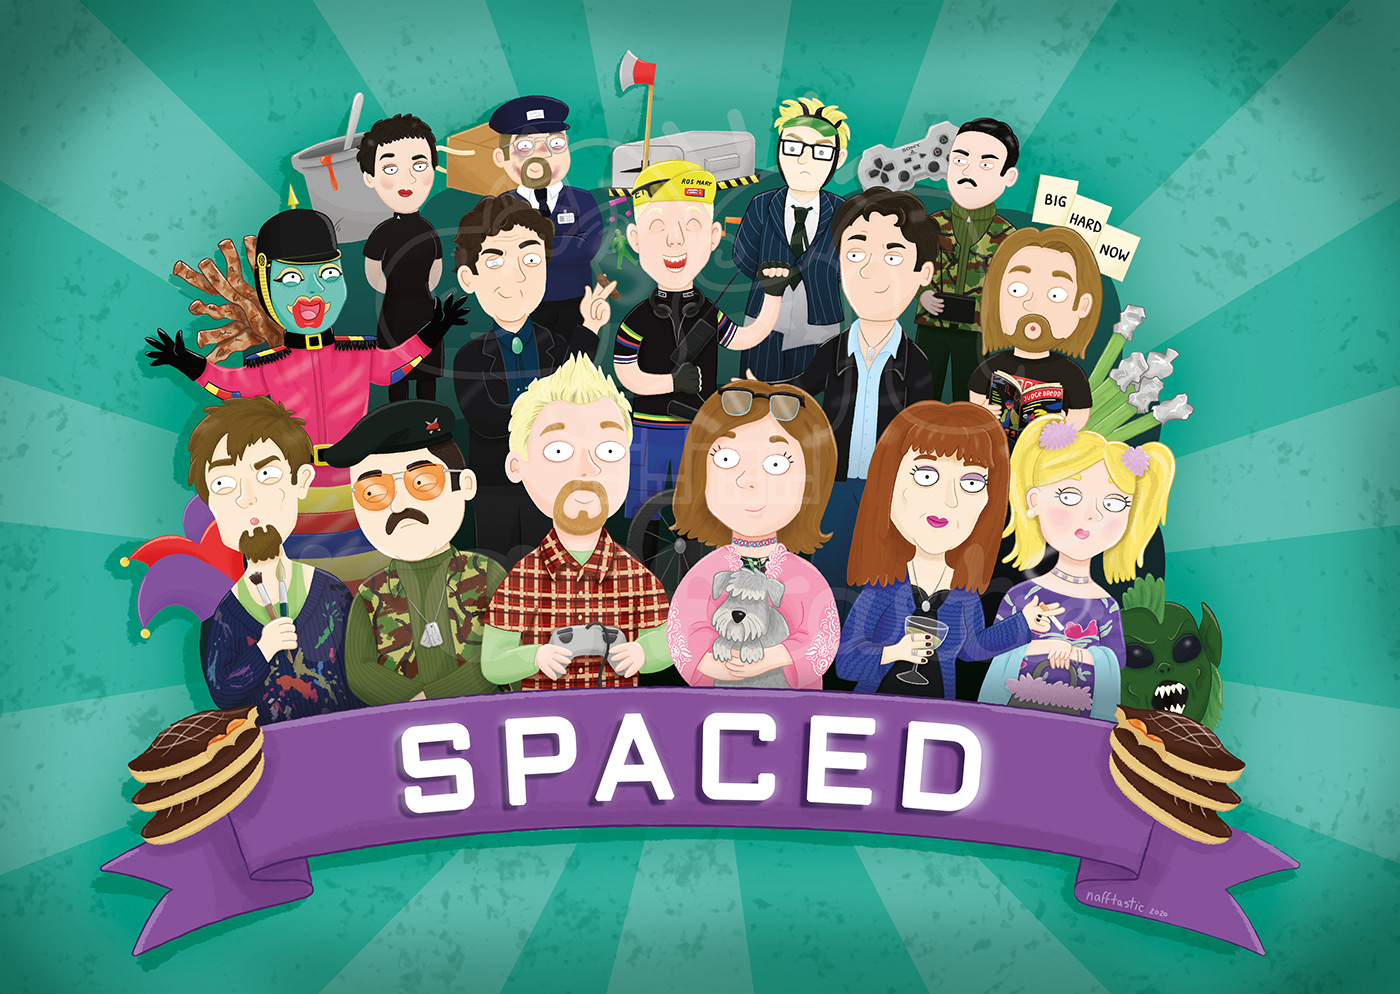 cartoon channel 4 commission cult daisy steiner ILLUSTRATION  Show spaced Tim Bisley tv